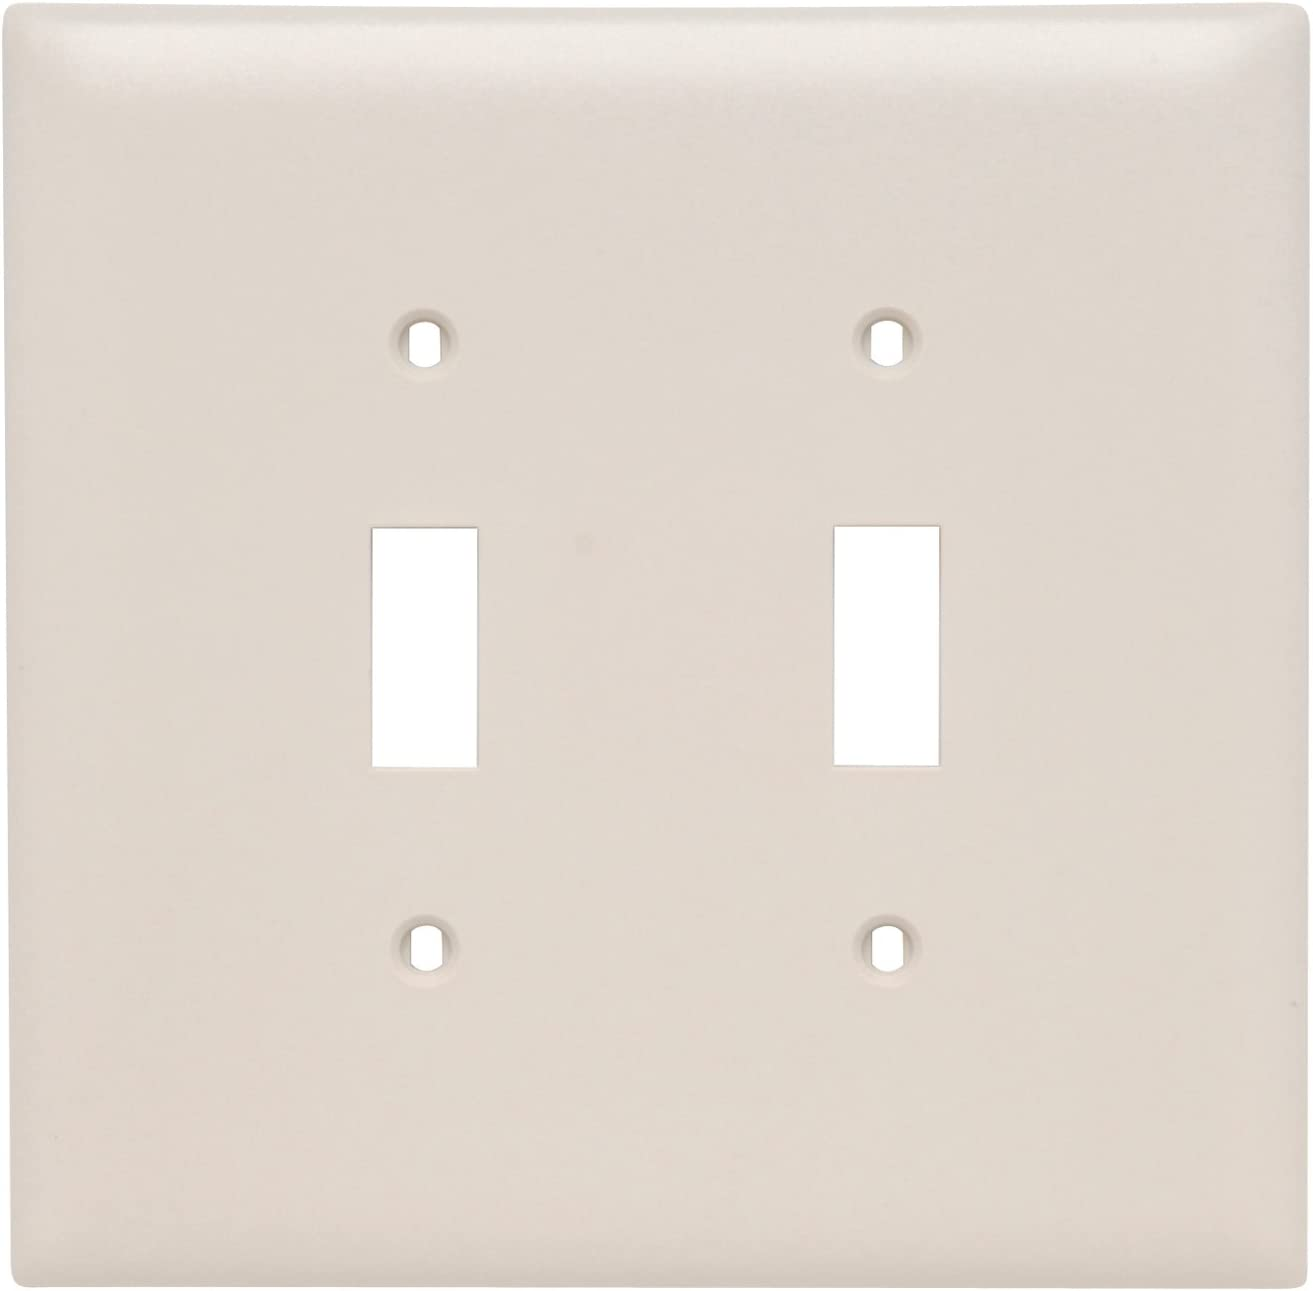 Pass Seymour Spo2wu Plastic Wall Plate Jumbo Two Gang Two Toggle Without Line White